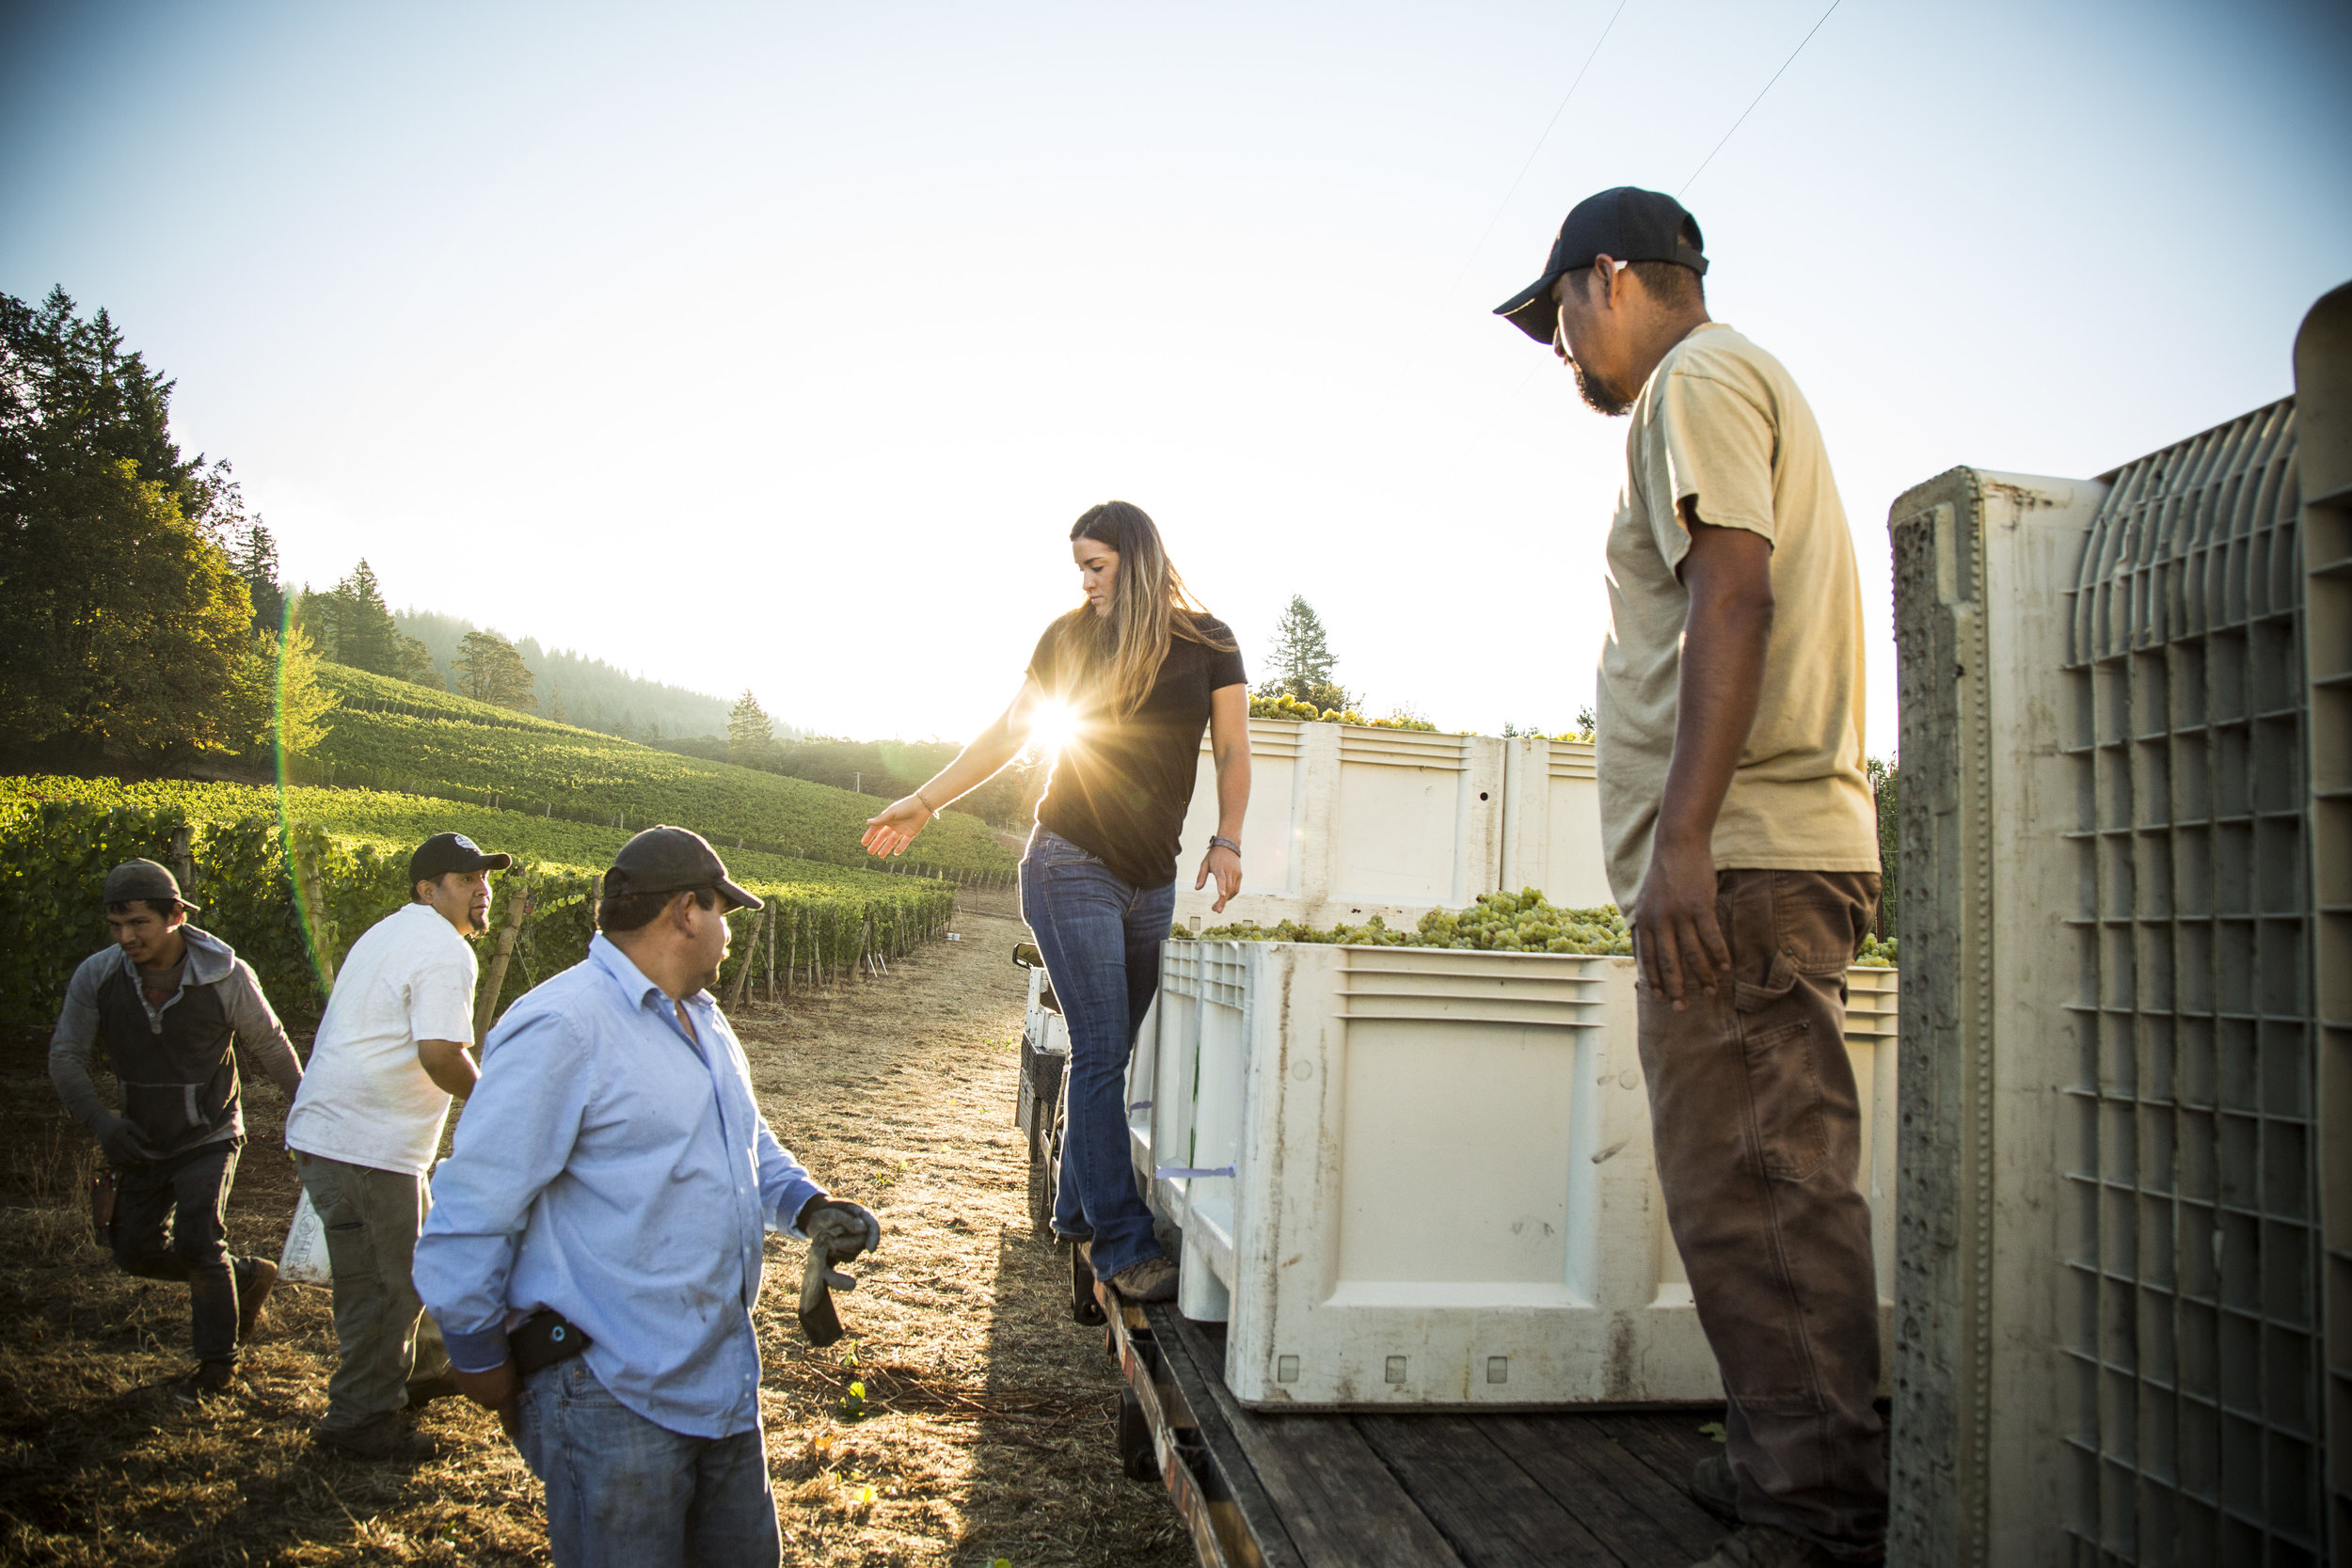 Adelsheim Employees Loading Grapes on a Truck